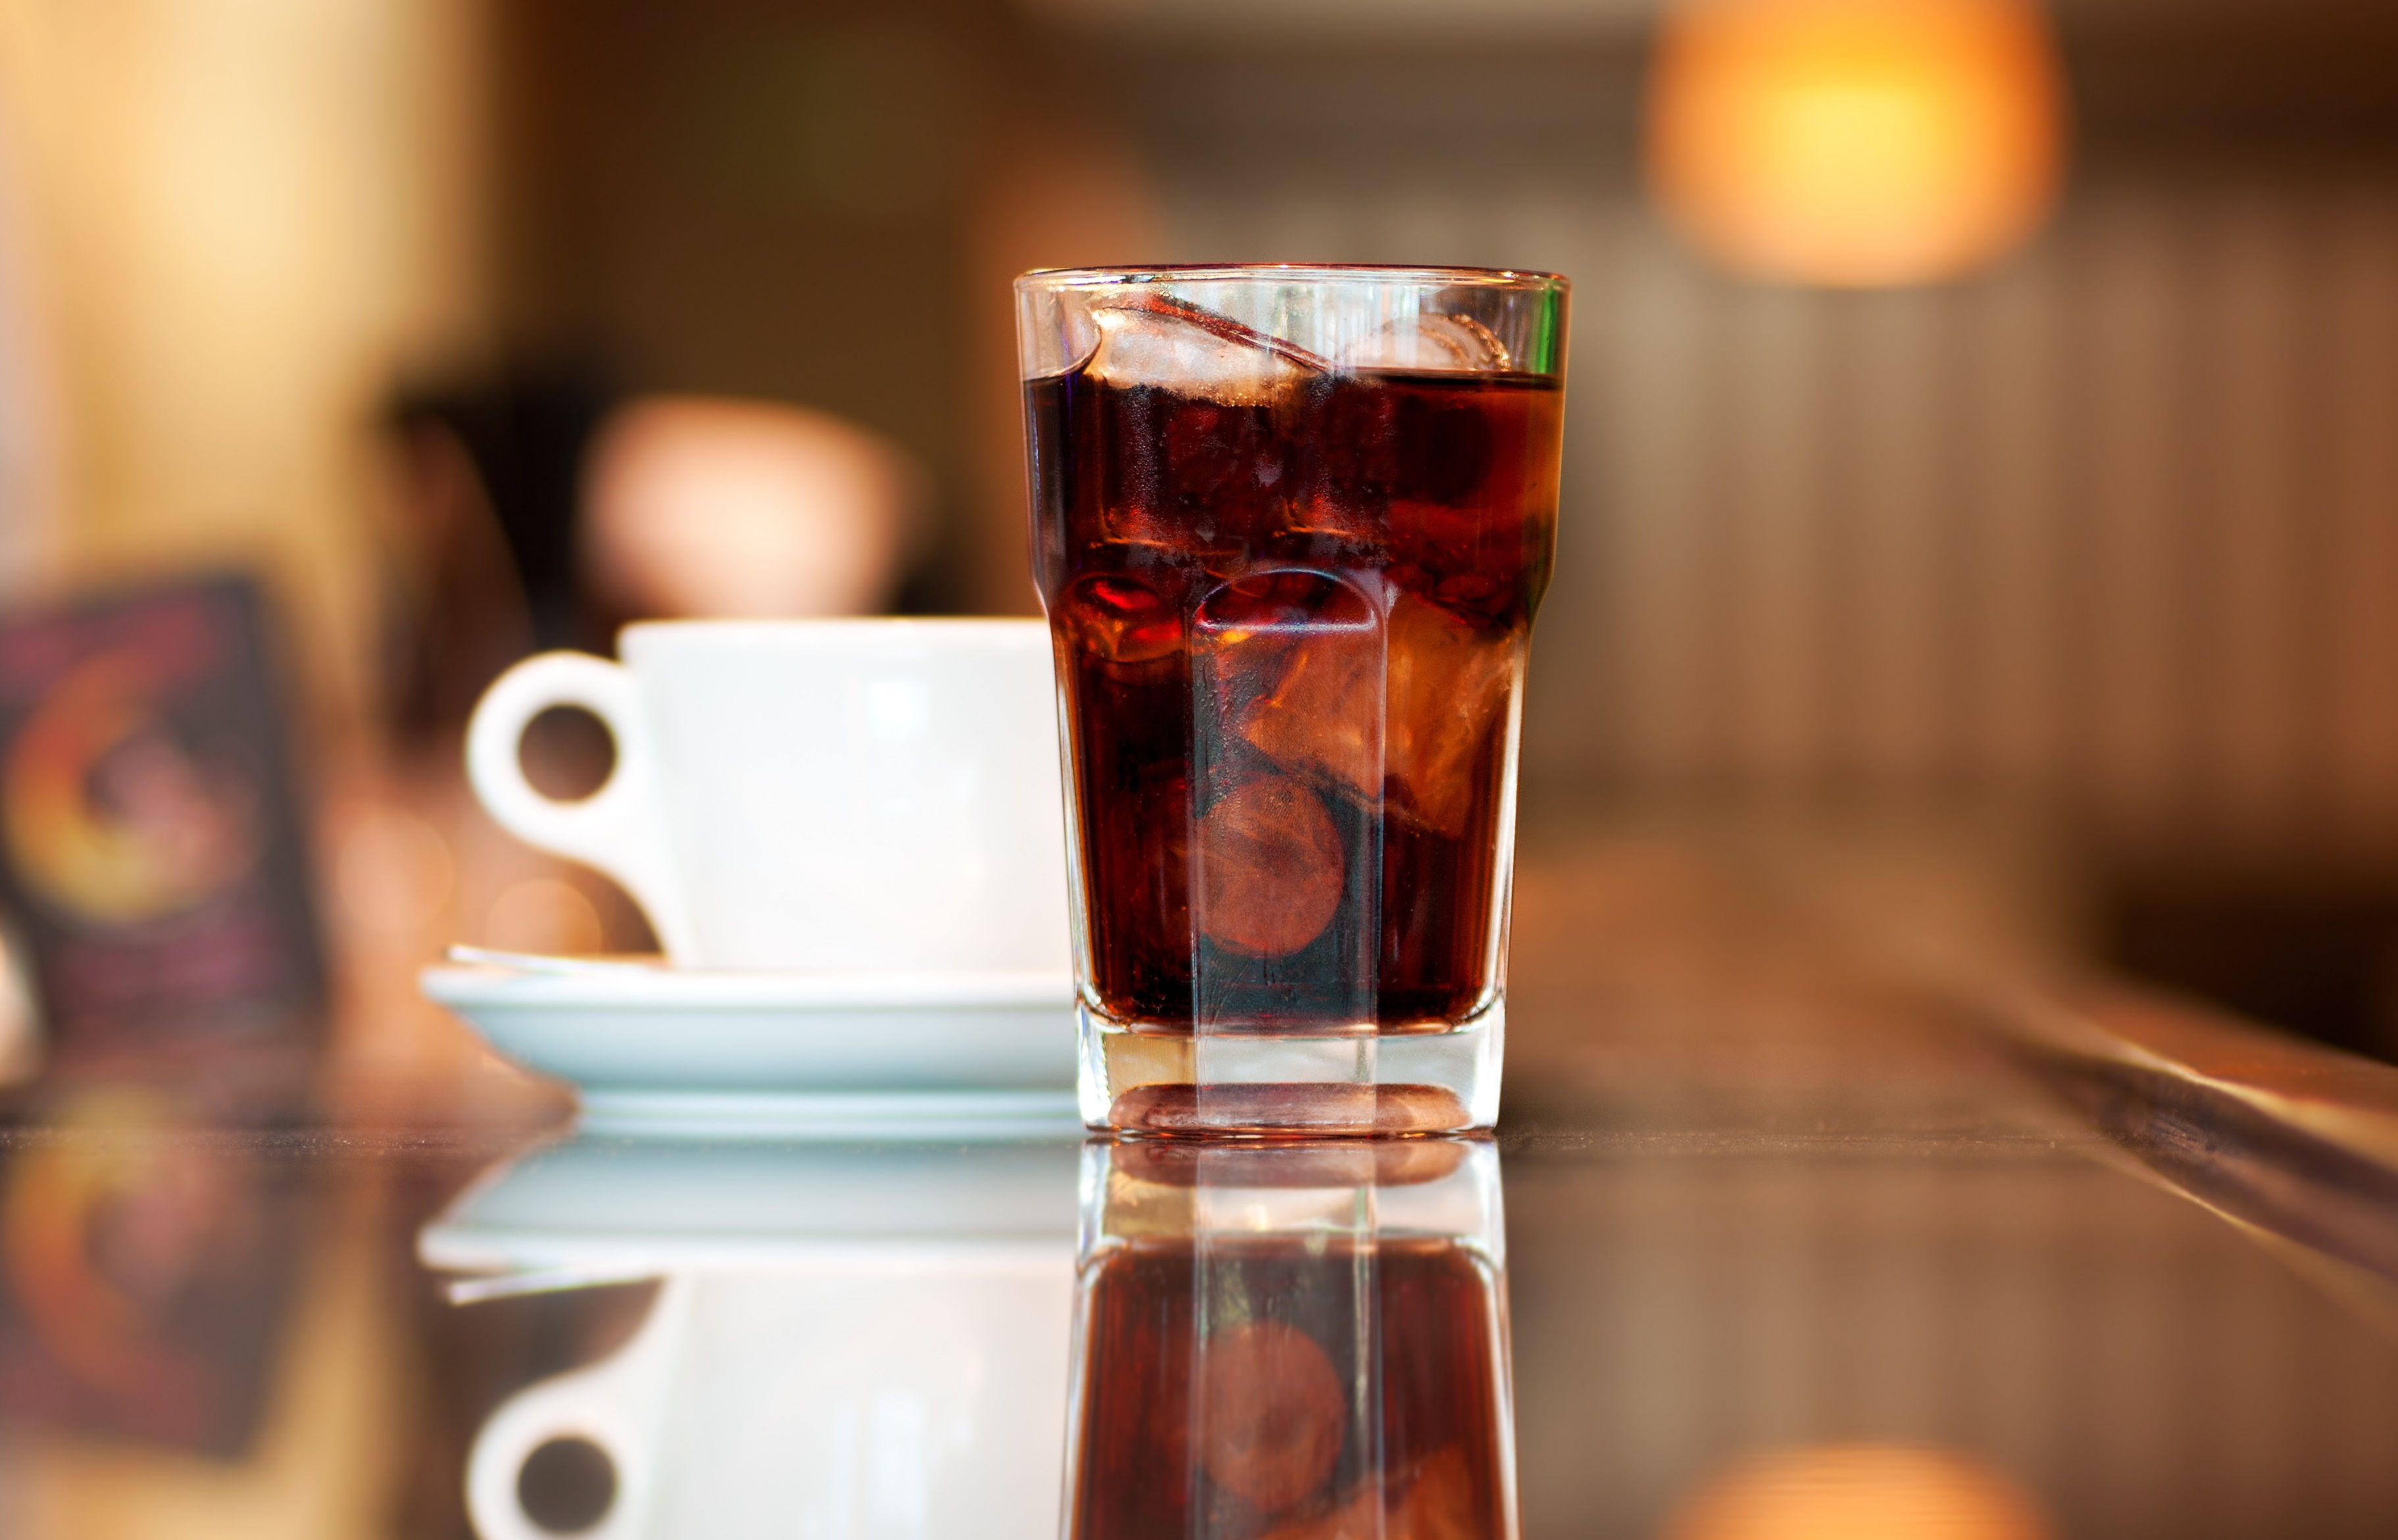 drinking one less sugary drink a day may lower type 2